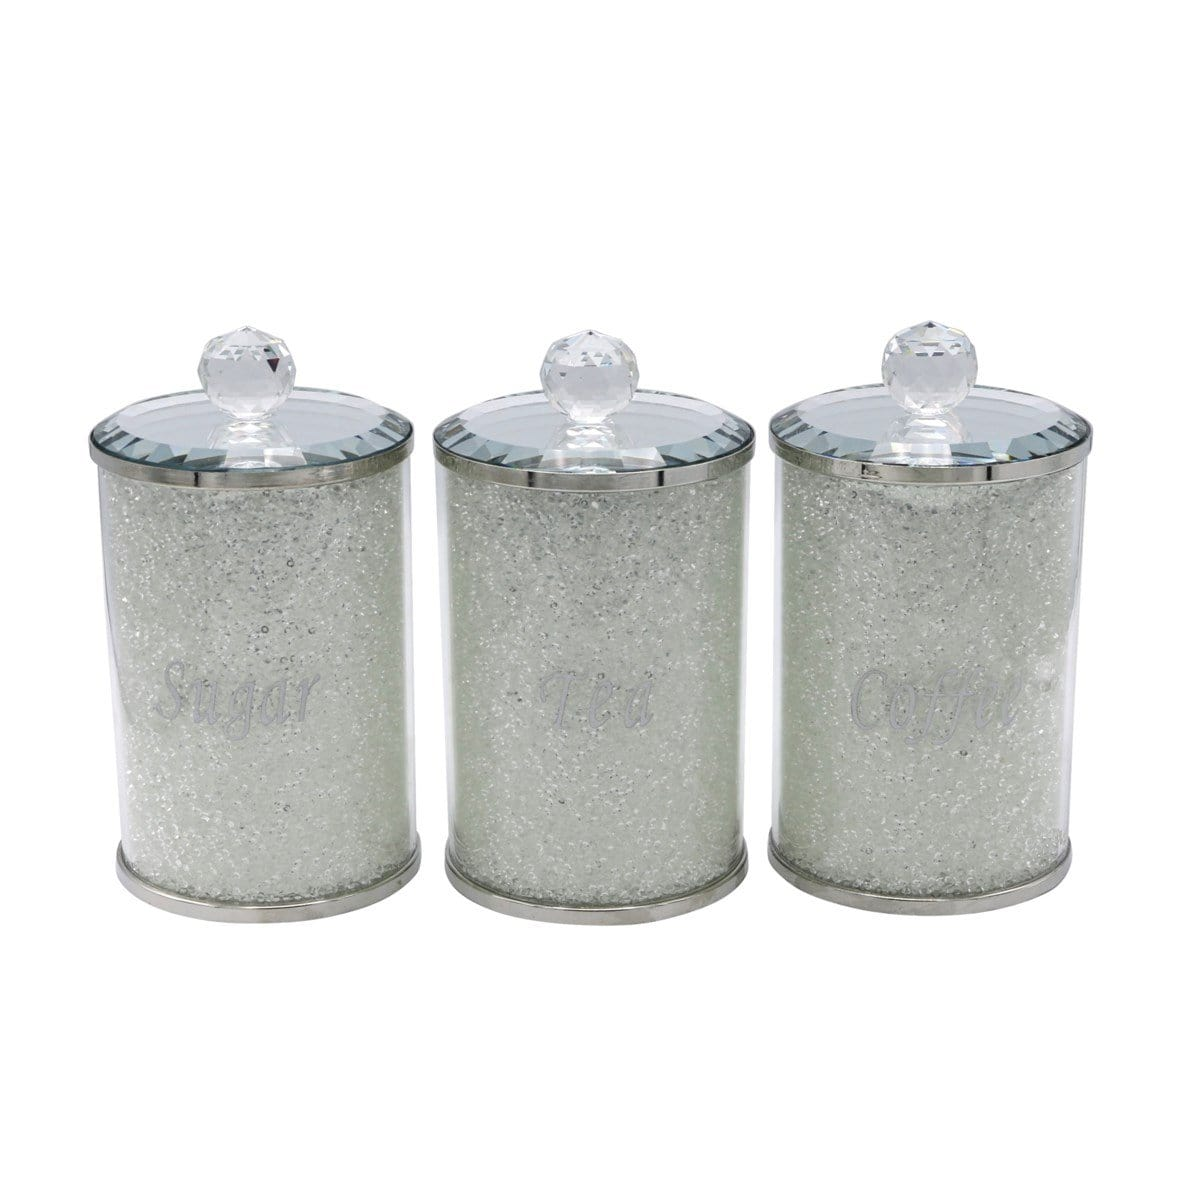 "3PC 6"" Crystal Filled Canister Set"